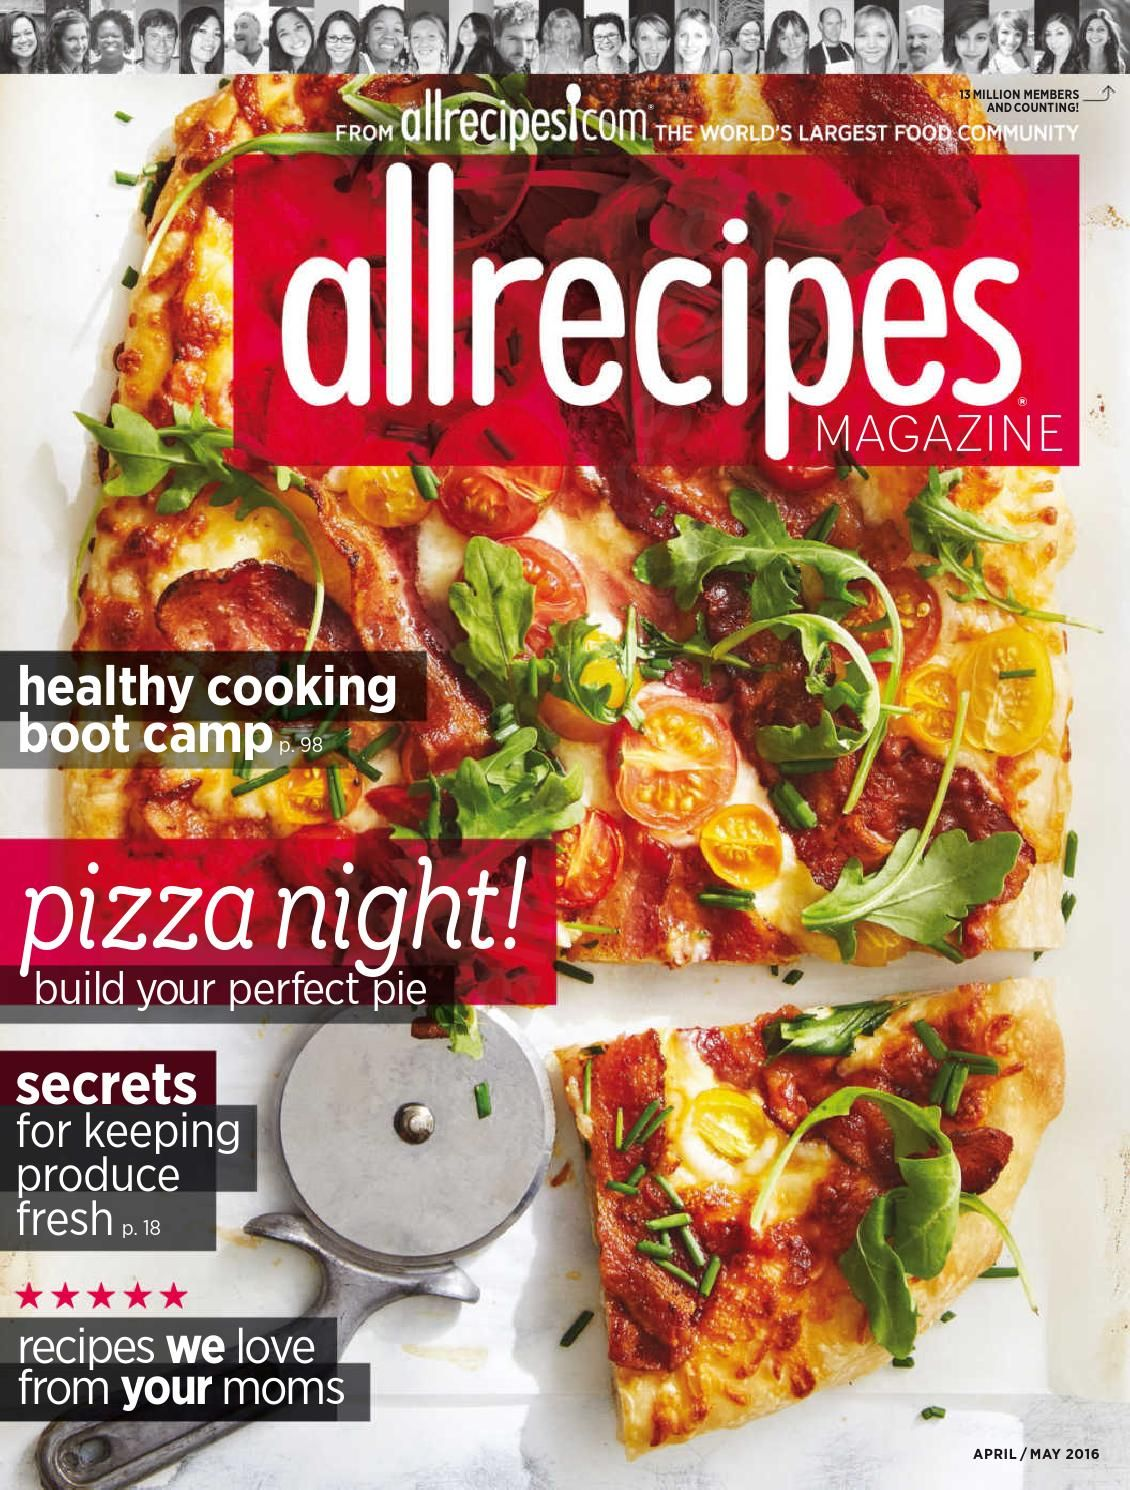 Allrecipes may 2016 allmagazines digital magazine download allrecipes may 2016 allmagazines digital magazine download pdf forumfinder Image collections